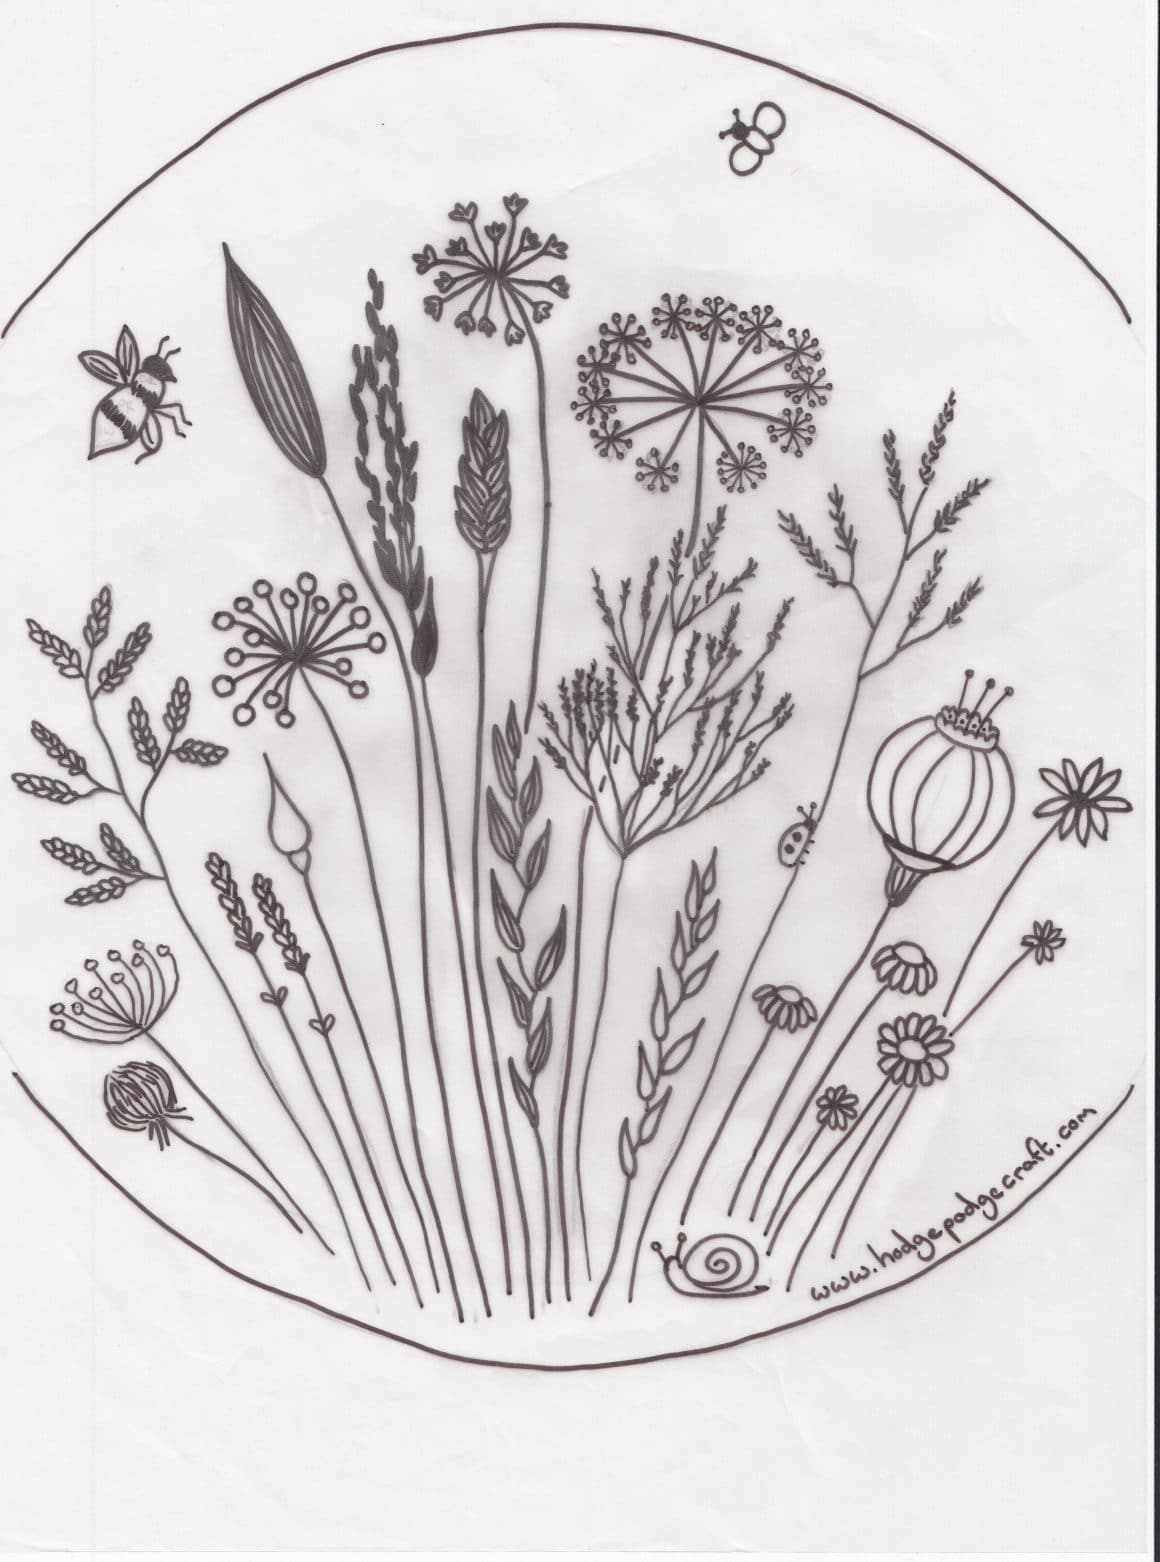 Free floral meadow embroidery pattern embroidery floral and stitch jeuxipadfo Choice Image